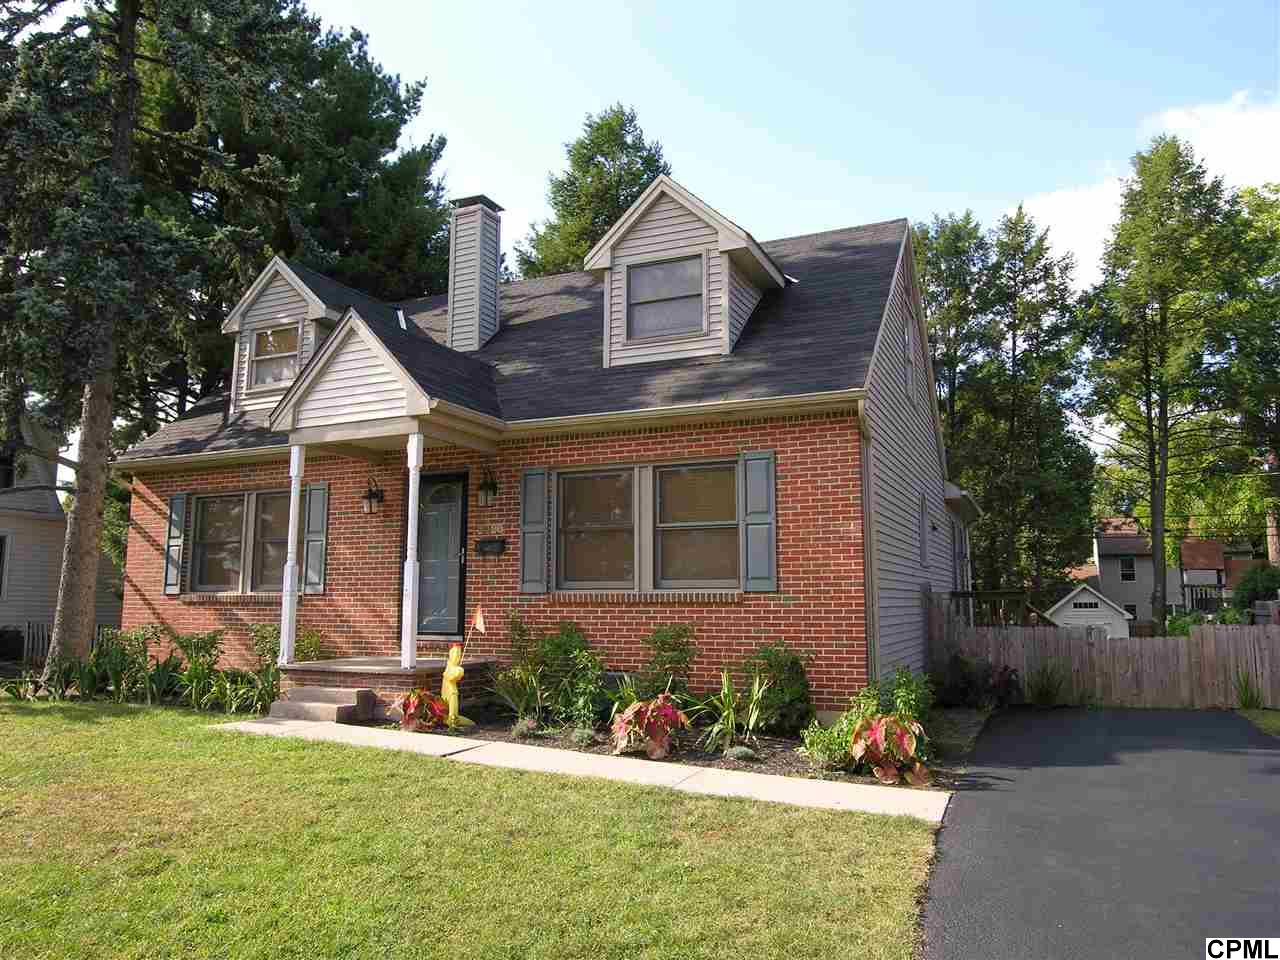 Rental Homes for Rent, ListingId:32371482, location: 3020 Columbia Ave Camp Hill 17011